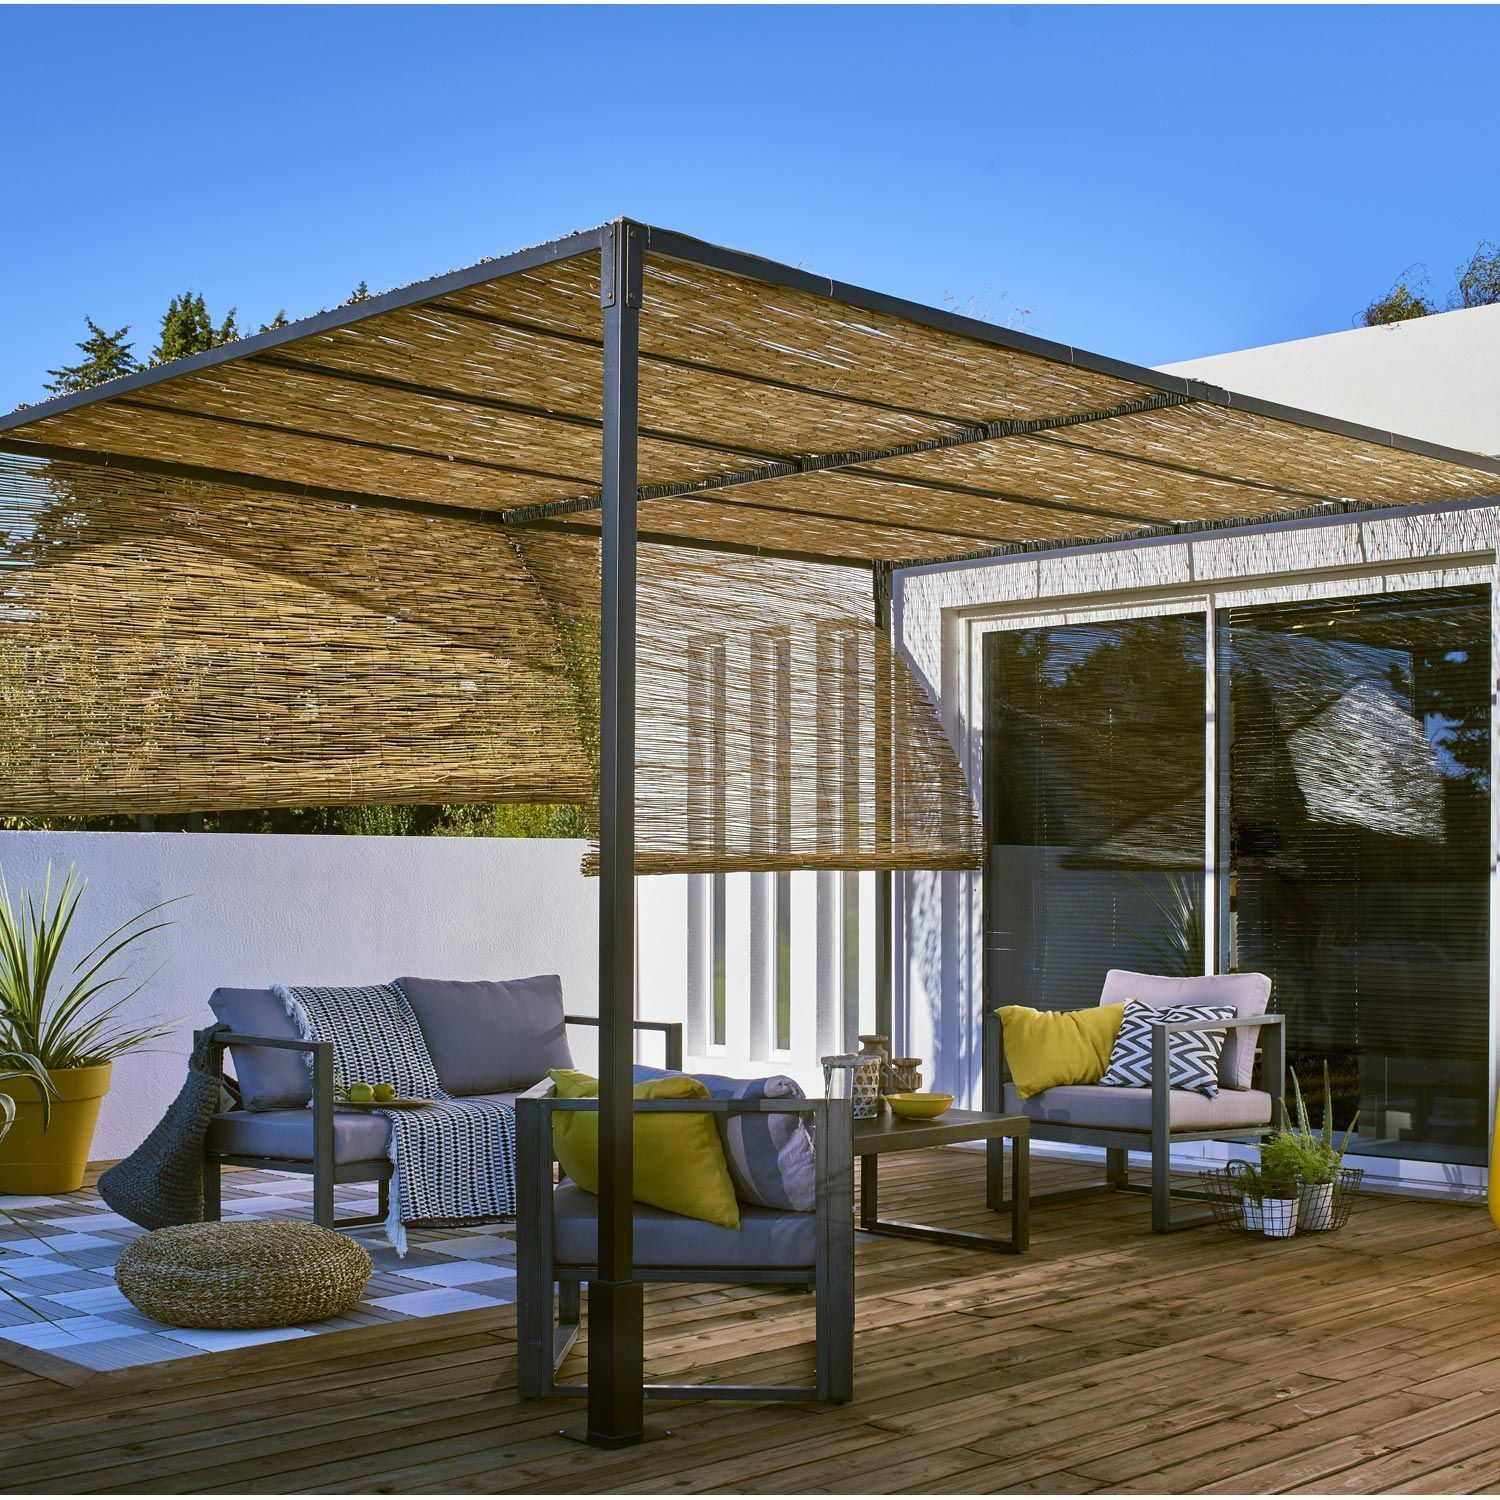 Arbor, Pergola And Terrace Roof Leroy Merlin, Free-Standing tout Pergola Leroy Merlin